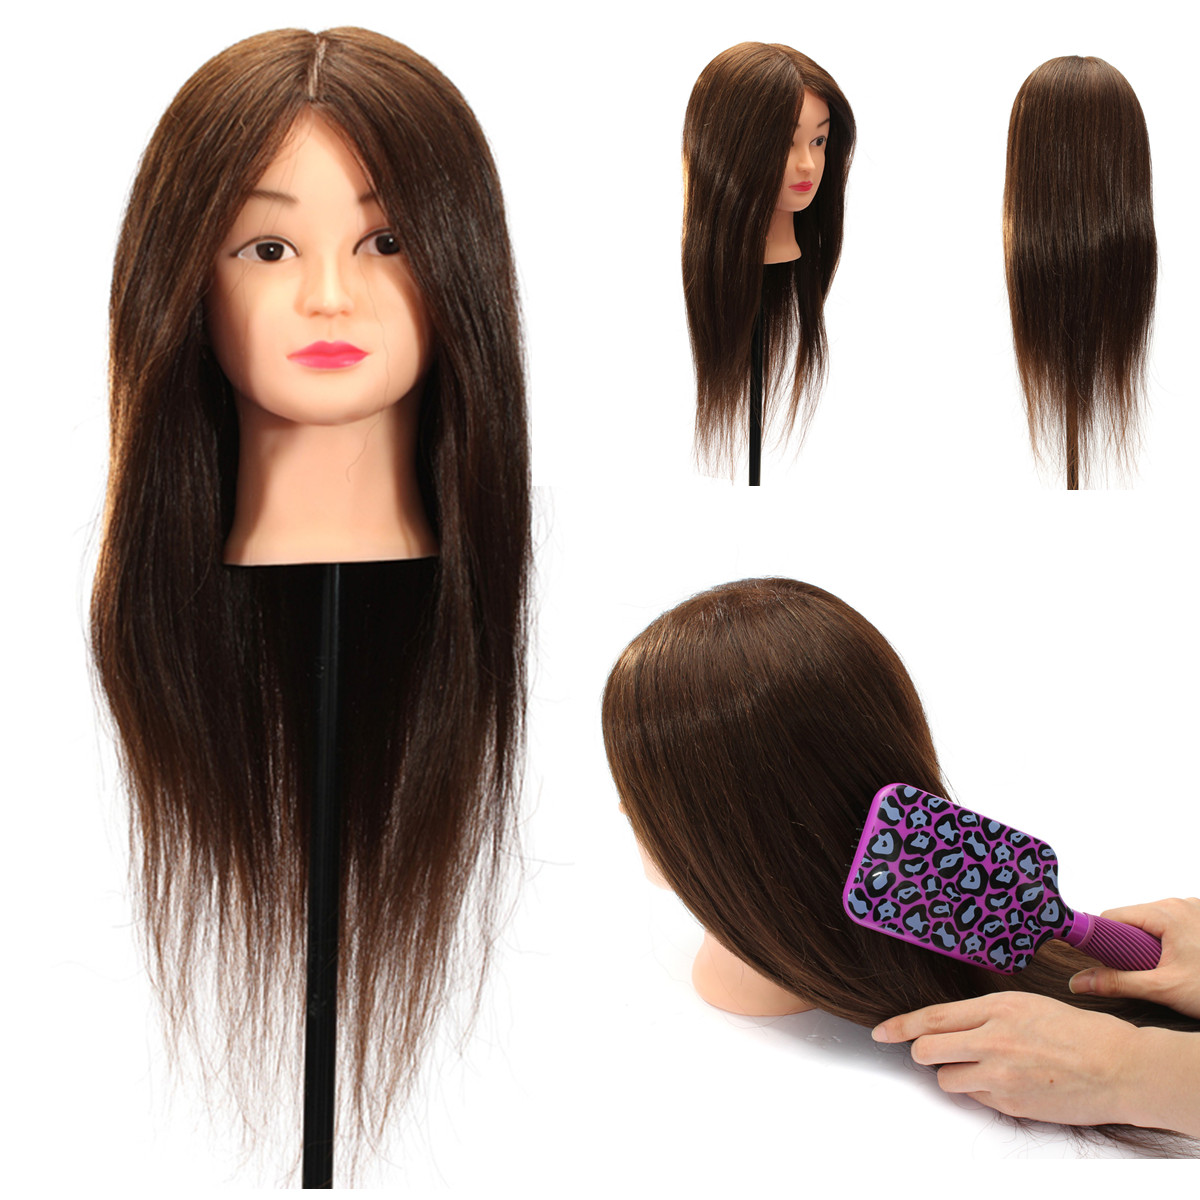 100% Real Human Hair Practice Head Training Mannequin